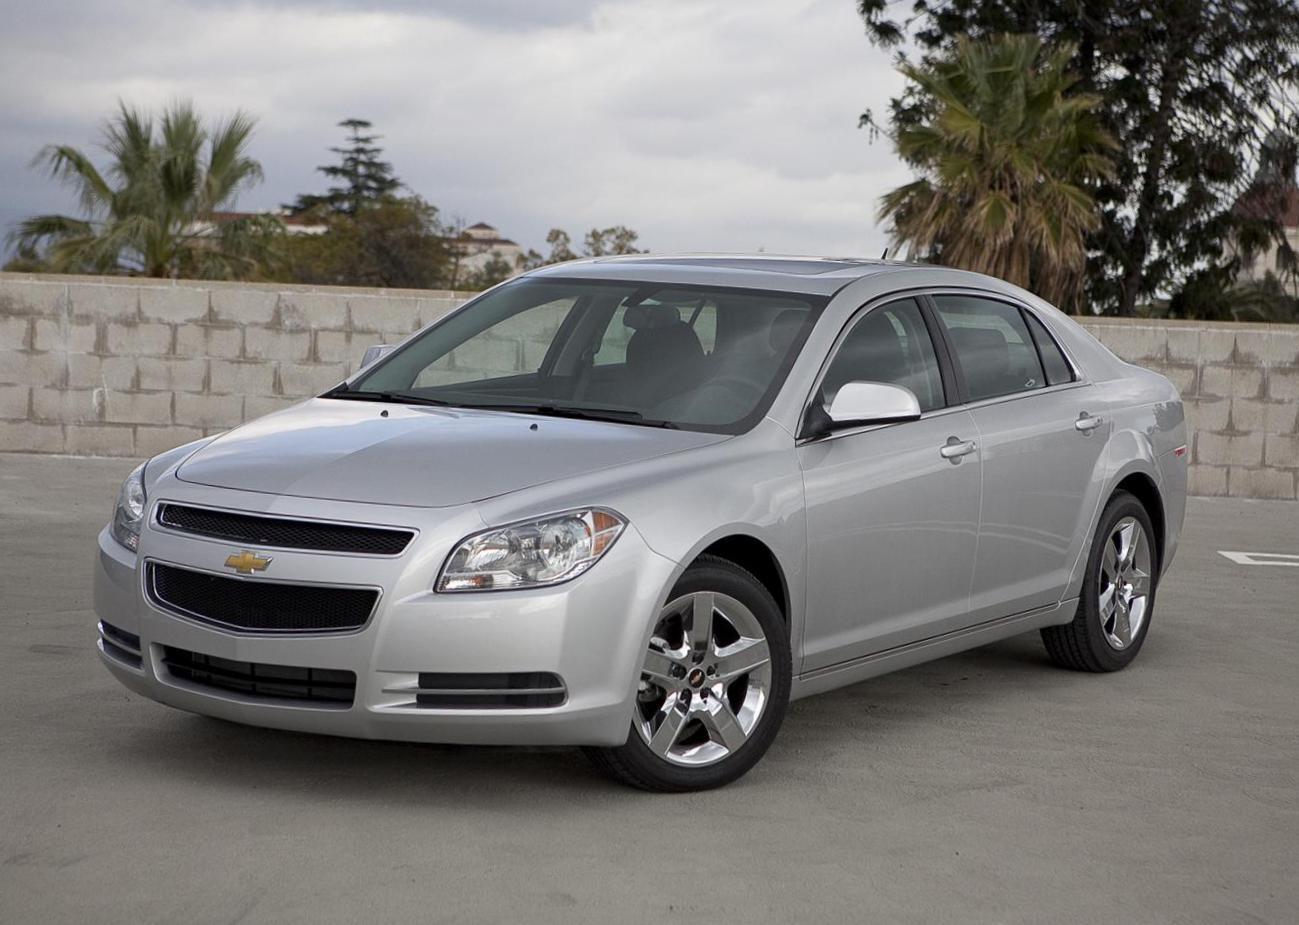 Malibu Chevrolet Specifications sedan